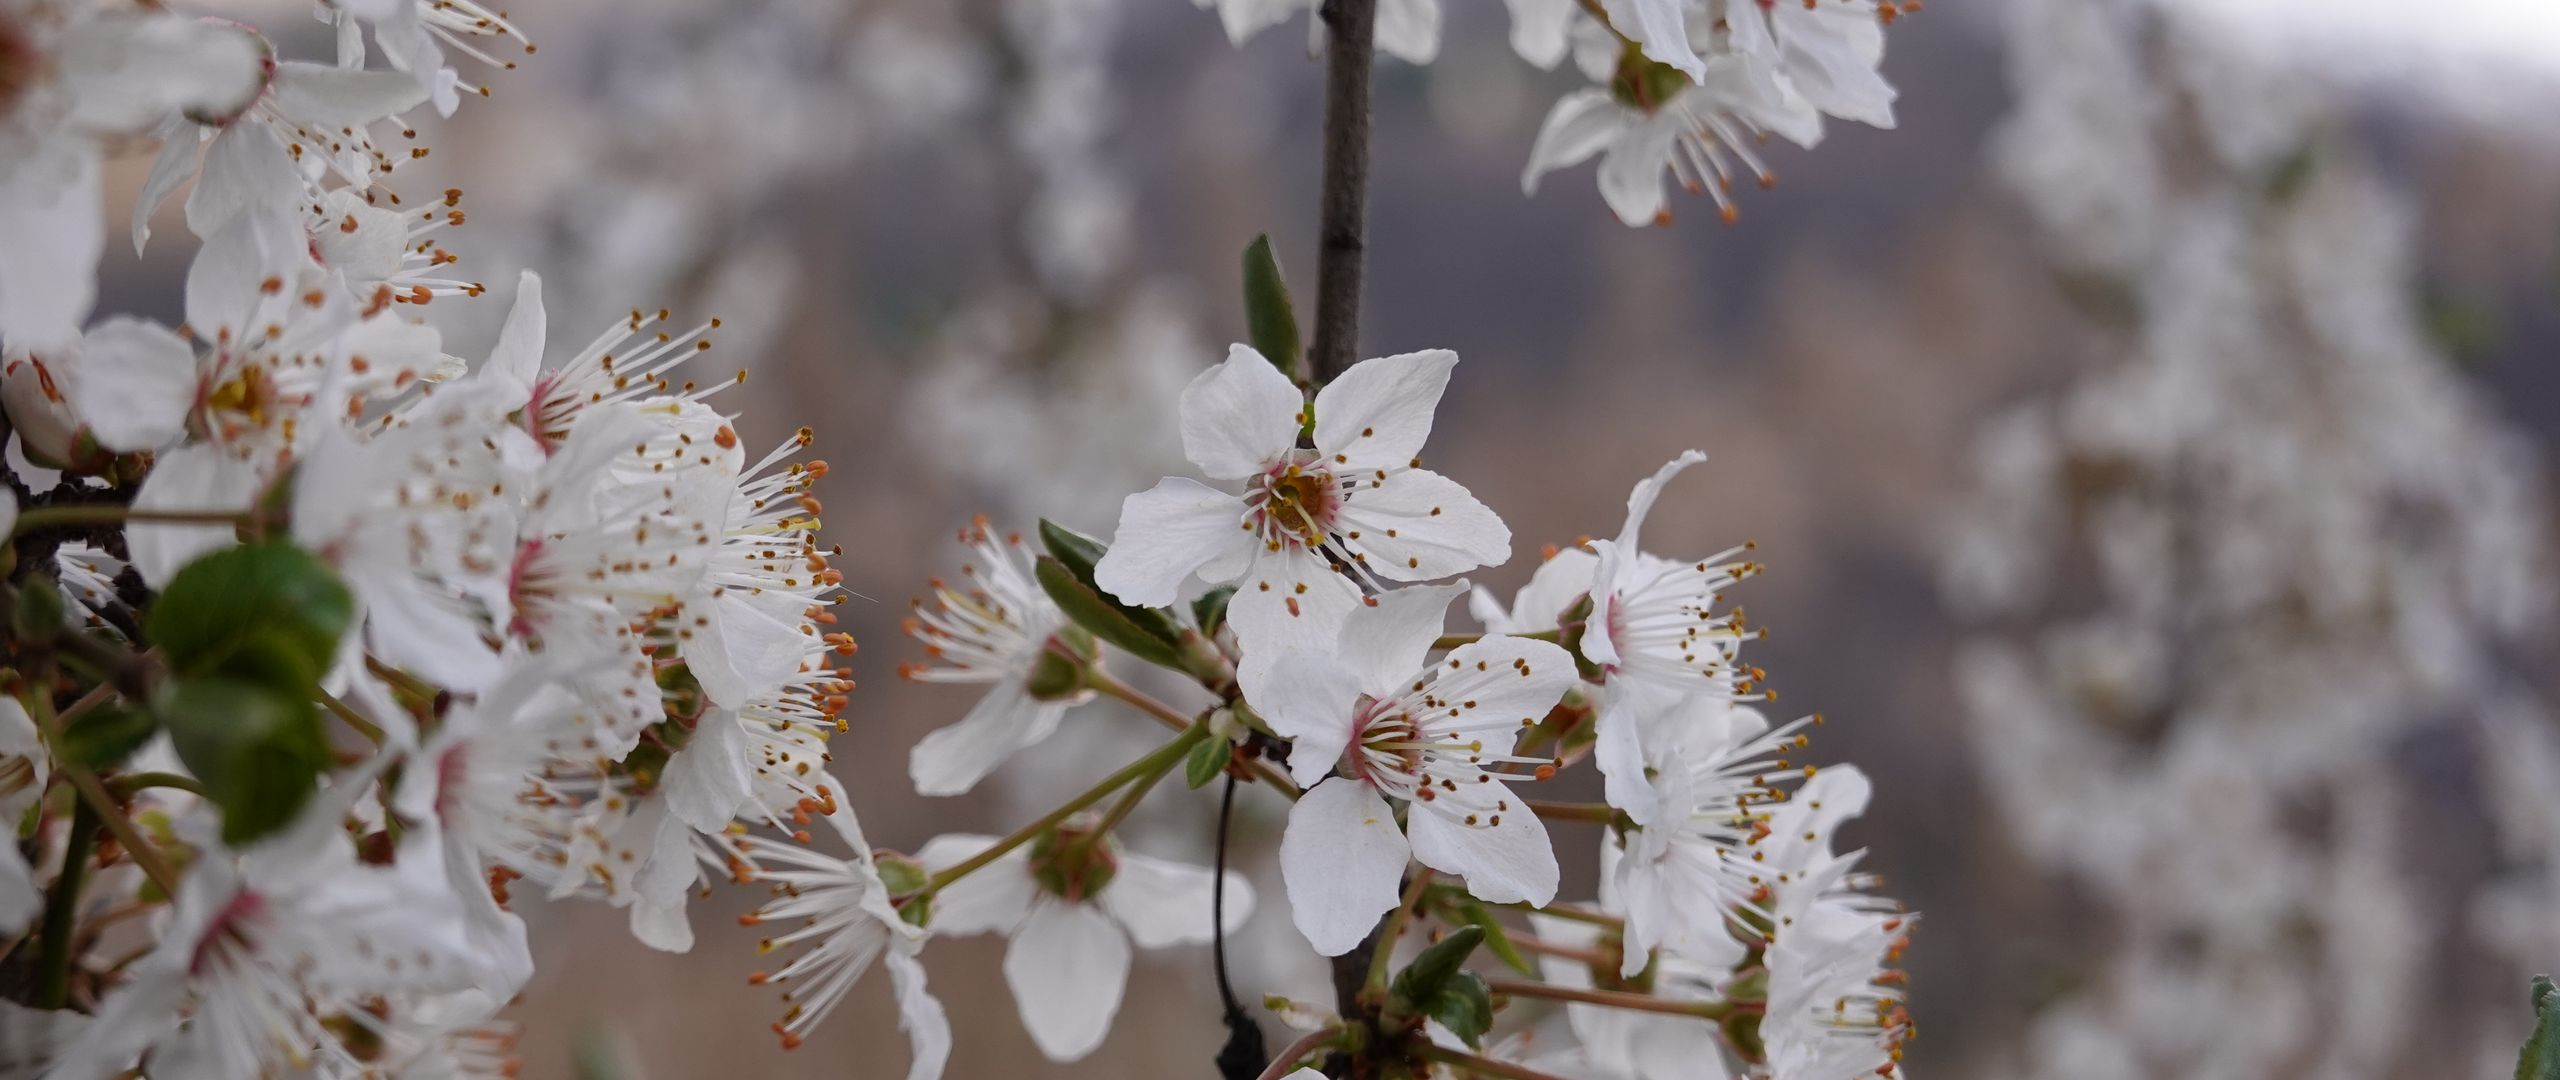 2560x1080 Wallpaper cherry, flowers, petals, branches, spring, white